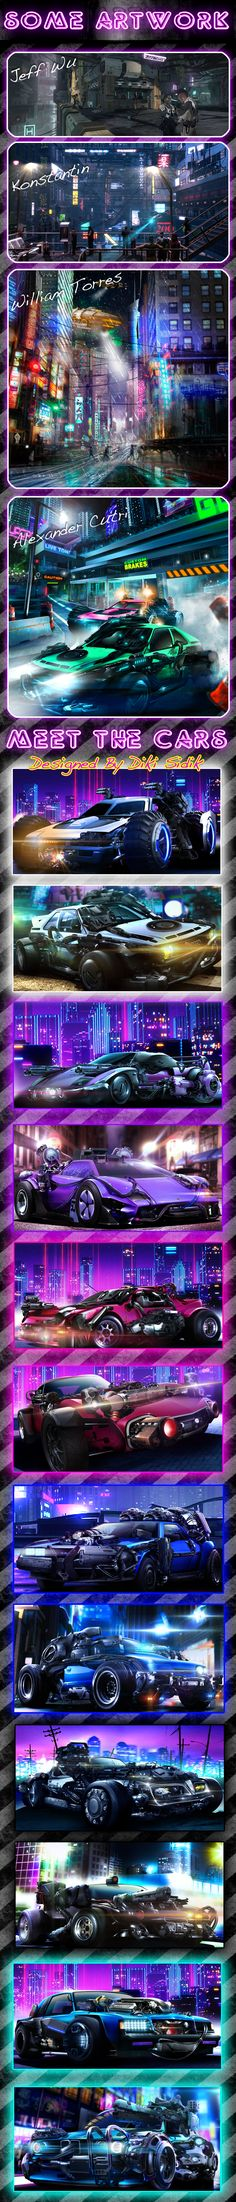 The Board to Death Team is raising funds for Neon Knights - The Board Game on Kickstarter! A Cyberpunk Battle Racing Board game. Upgrade your custom car. Board Game Design, Innovation Design, Custom Cars, Knights, Board Games, Northern Lights, Infographic, Death, Boards